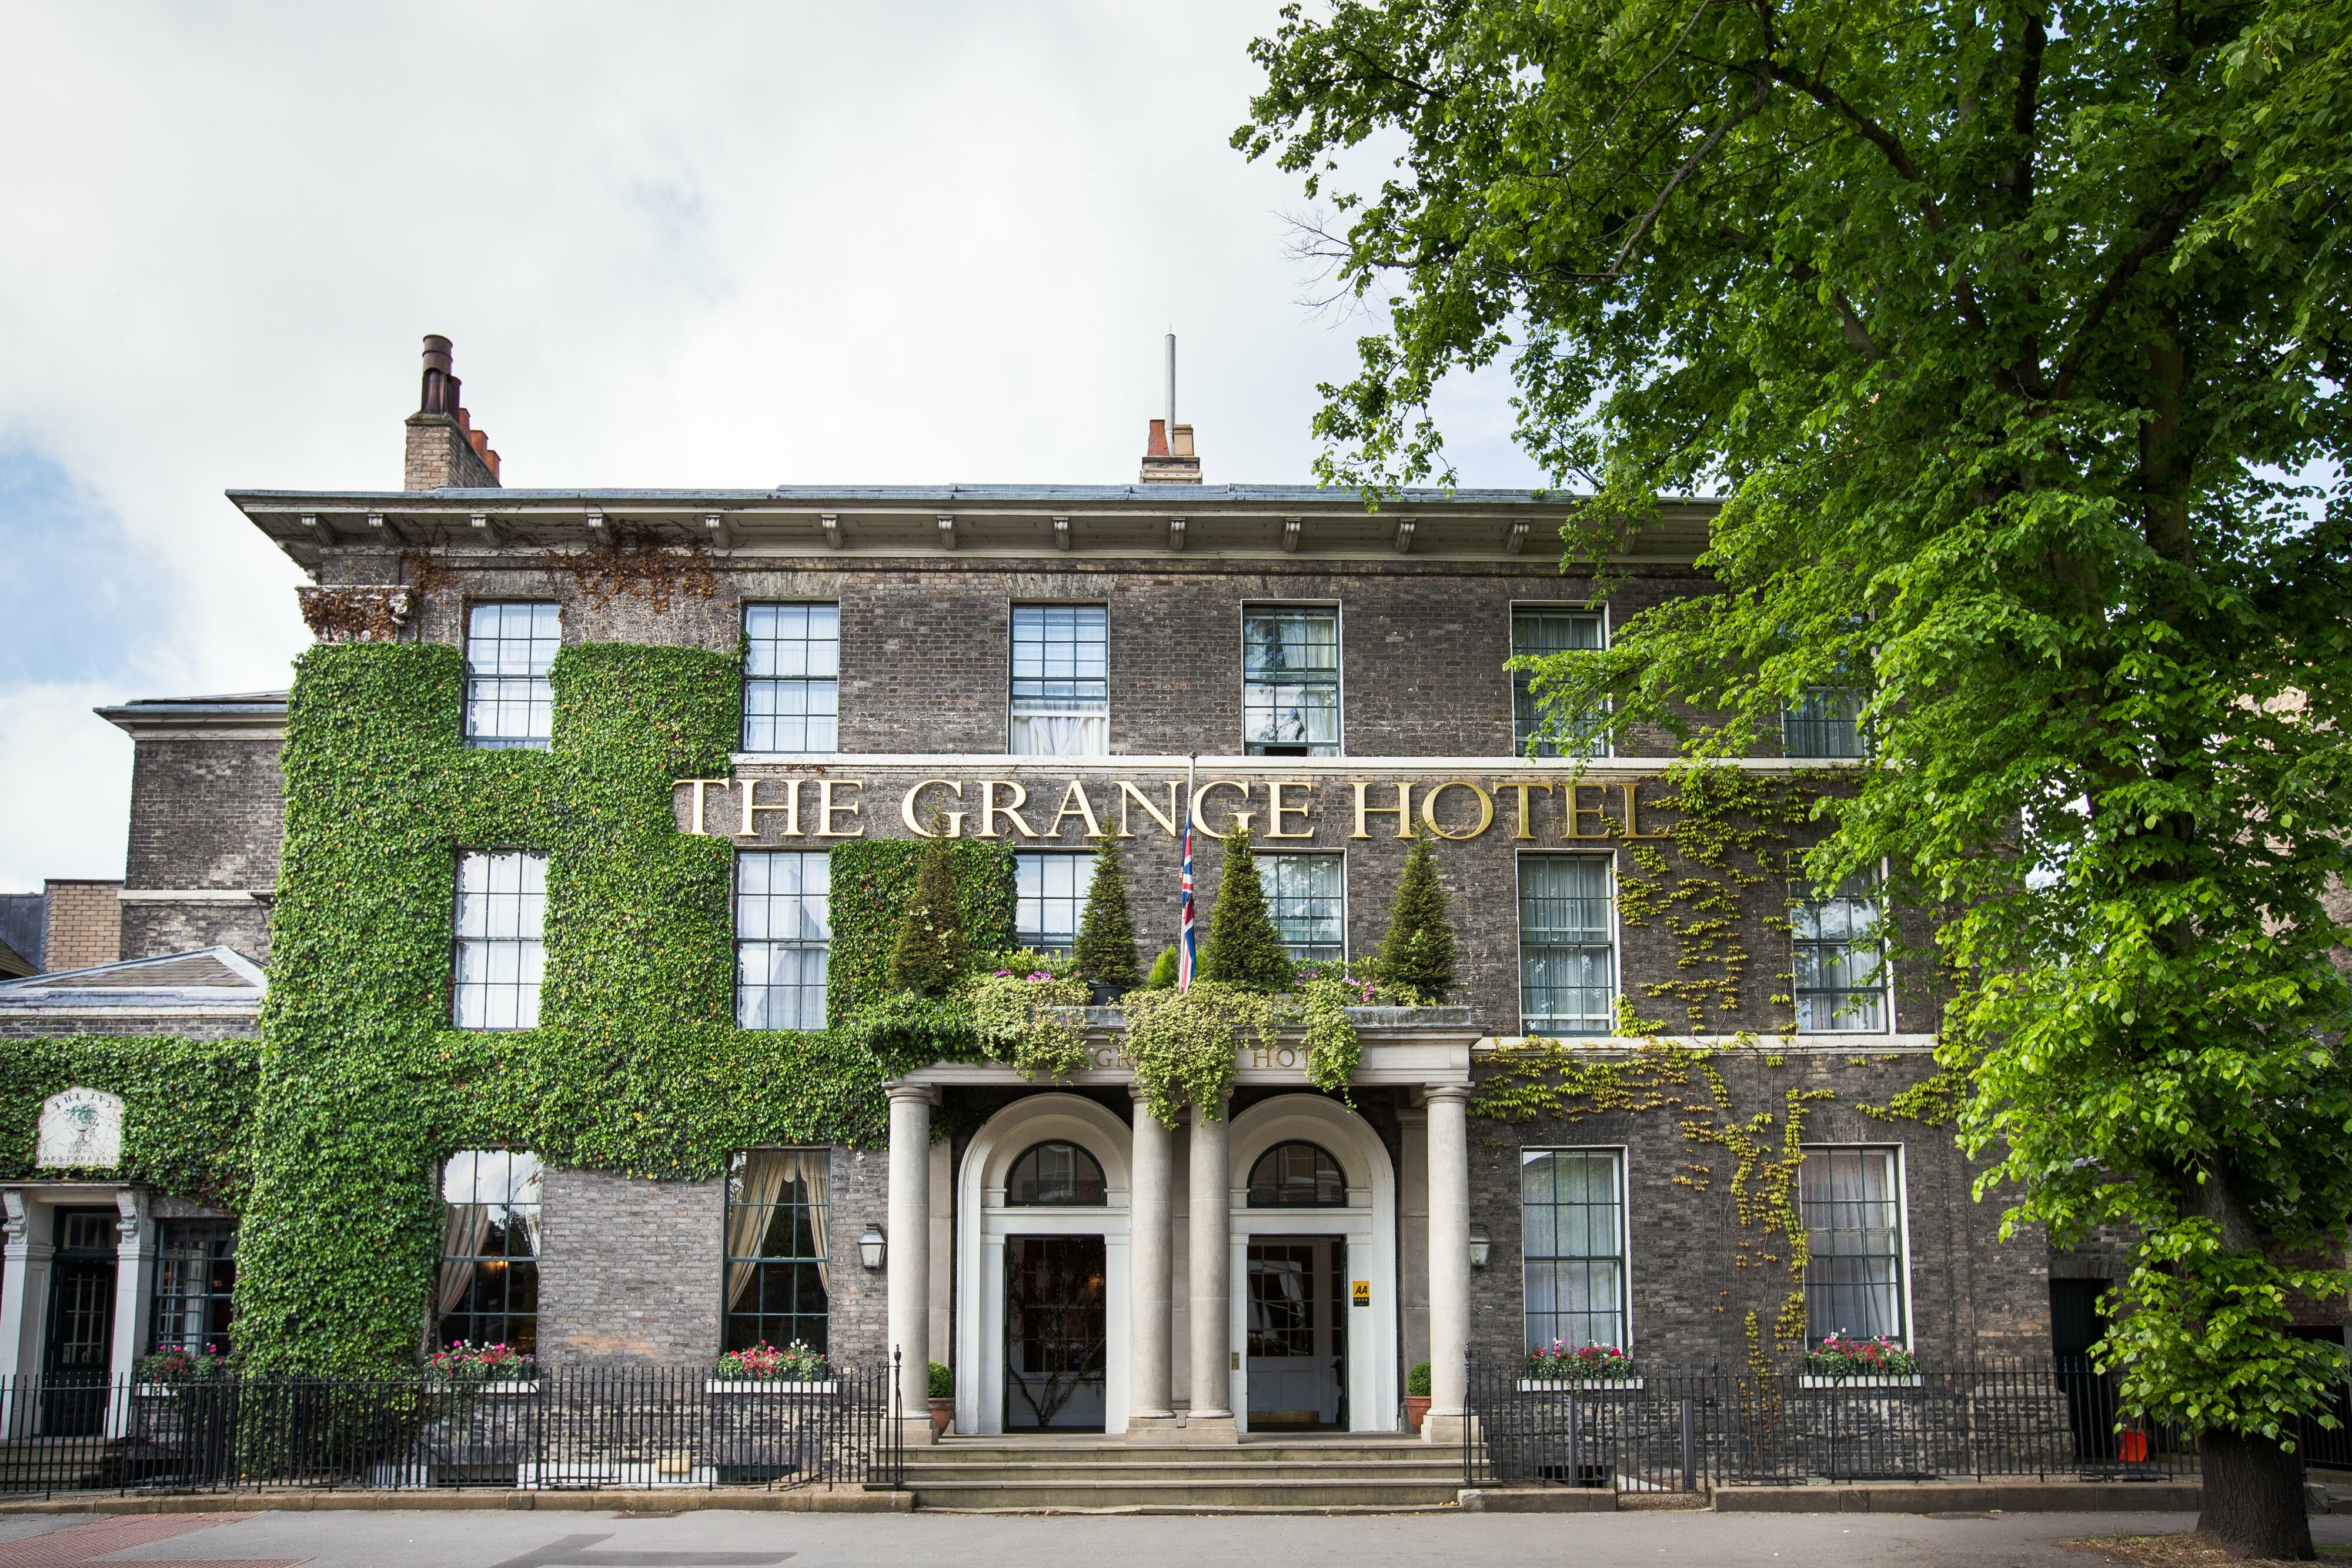 Escape to The Grange Hotel for an Intimate Country House Setting in York EAT LOVE SAVOR International luxury lifestyle magazine and bookazines